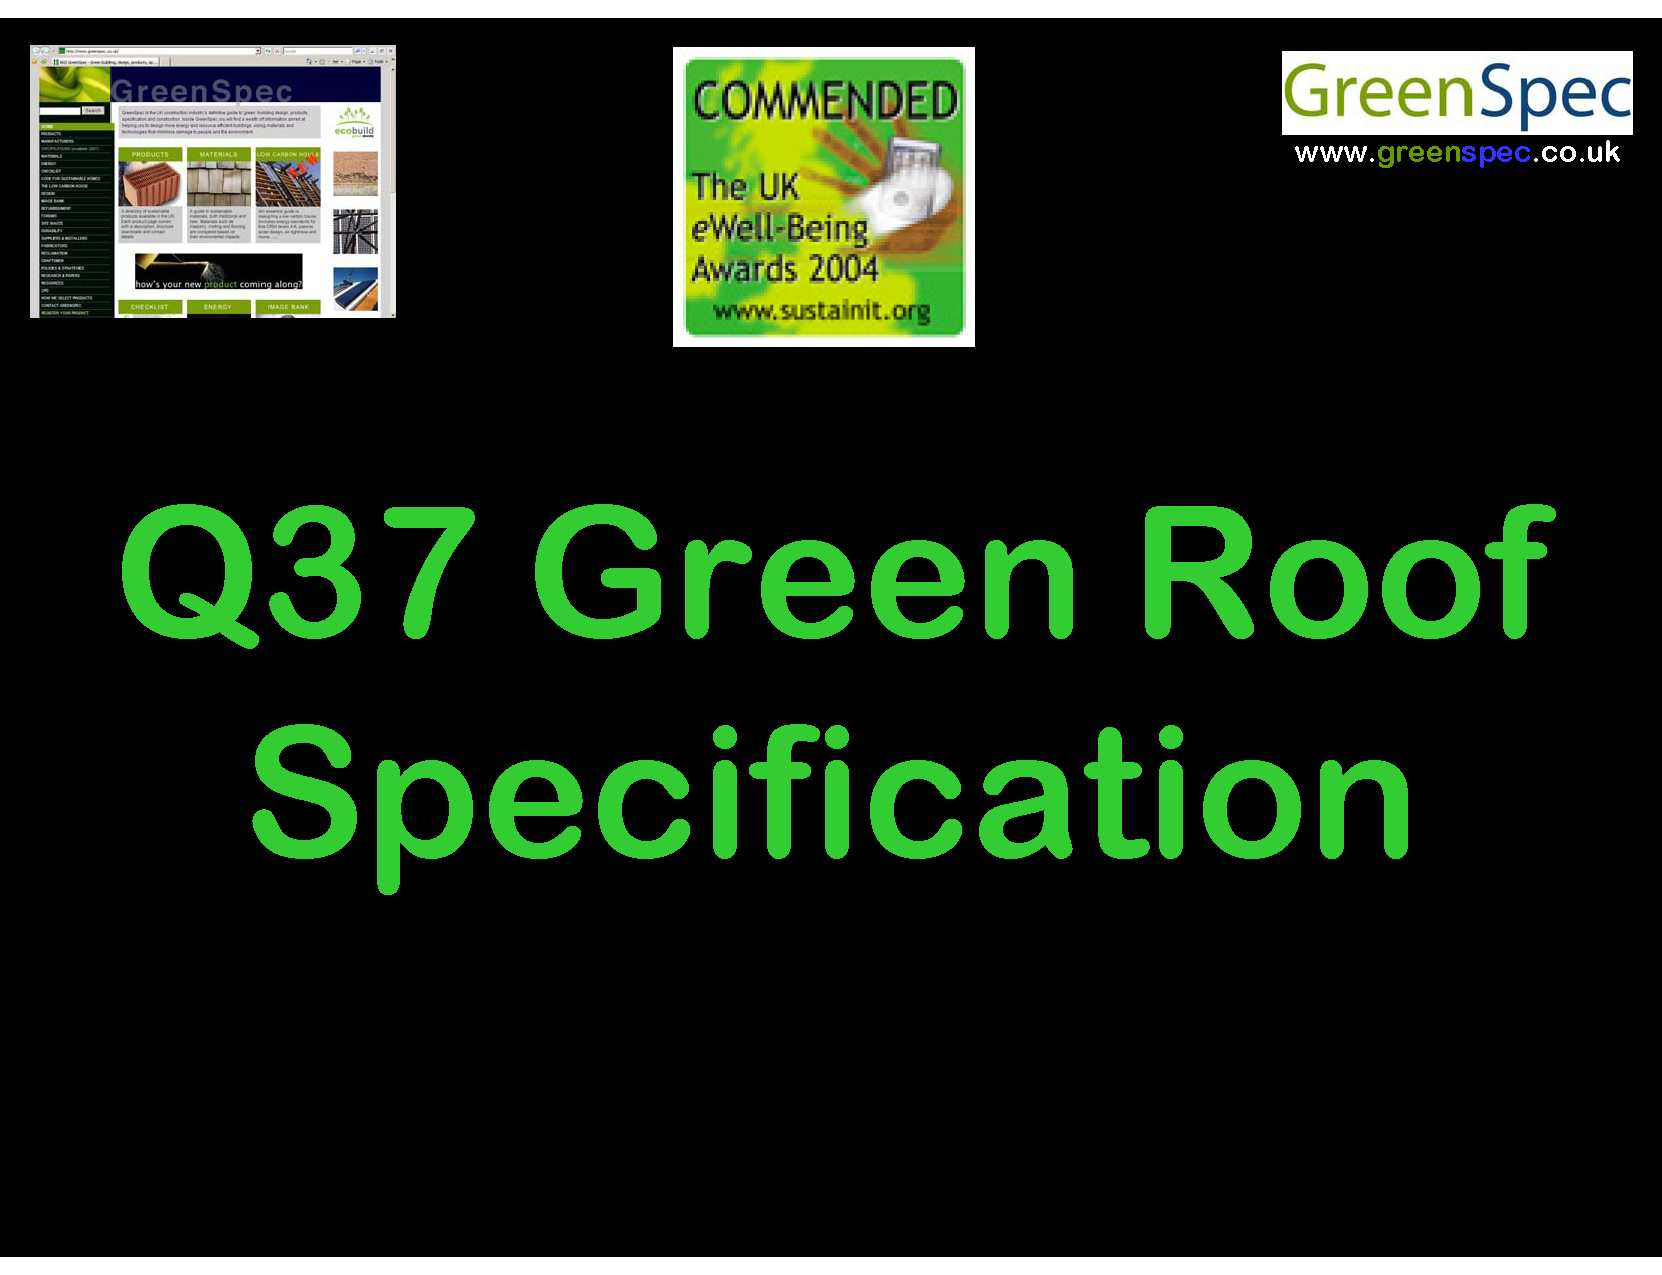 Q37GreenRoofSpecificationCDHandout.png